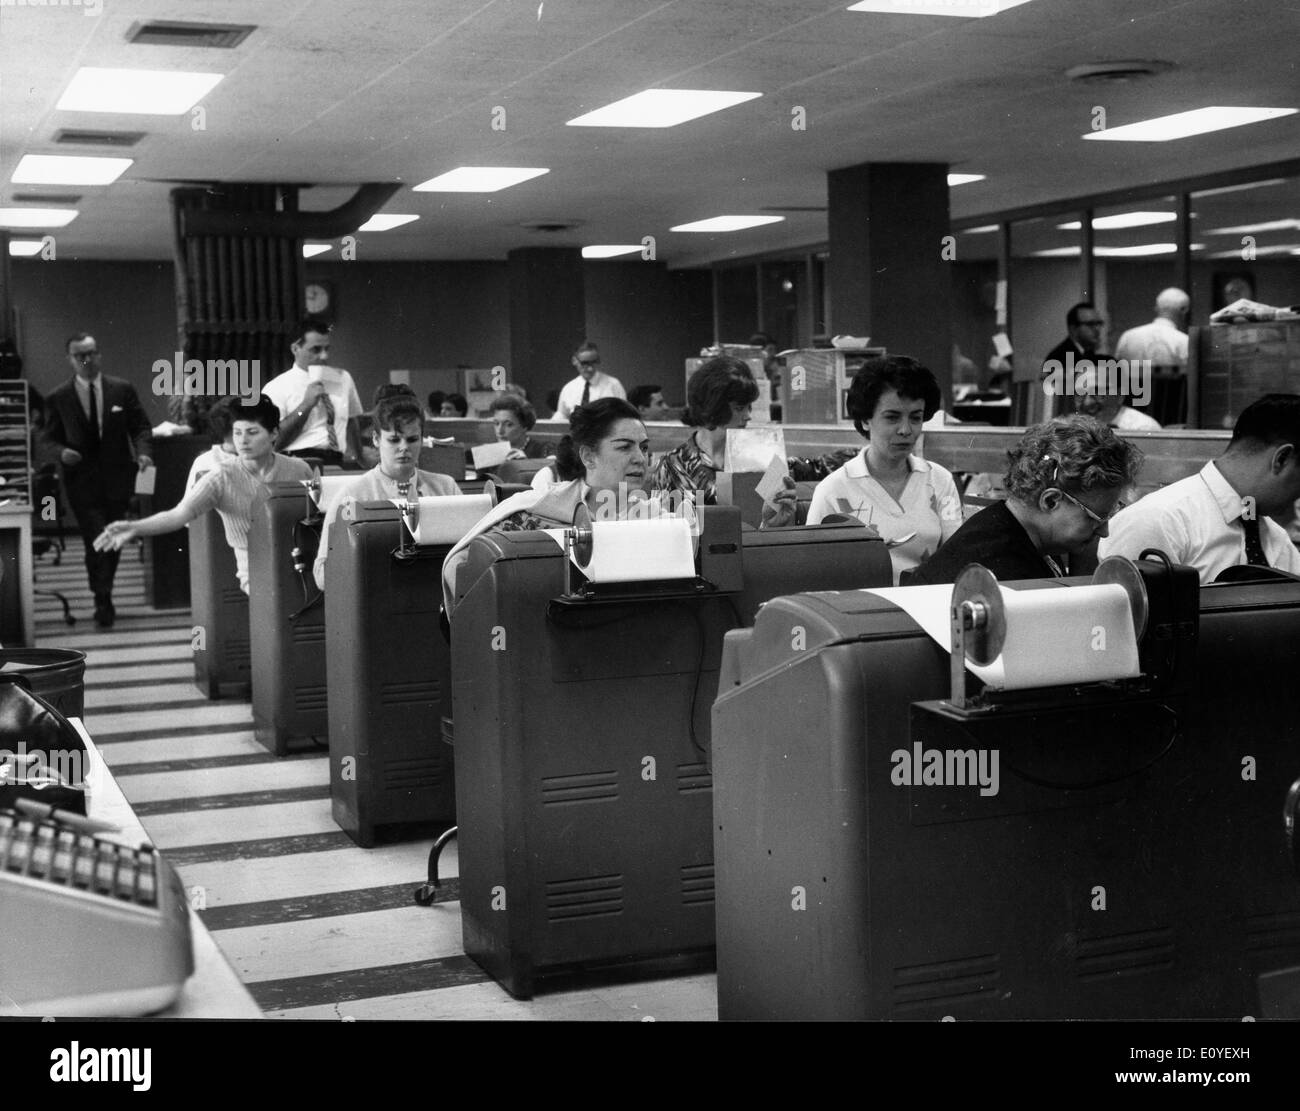 Jan. 01, 1970 - New York, New York, U.S. - File Photo: circa 1970s. Employees at Goodbody and Co., one of the largest investment firms in the U.S. - Stock Image